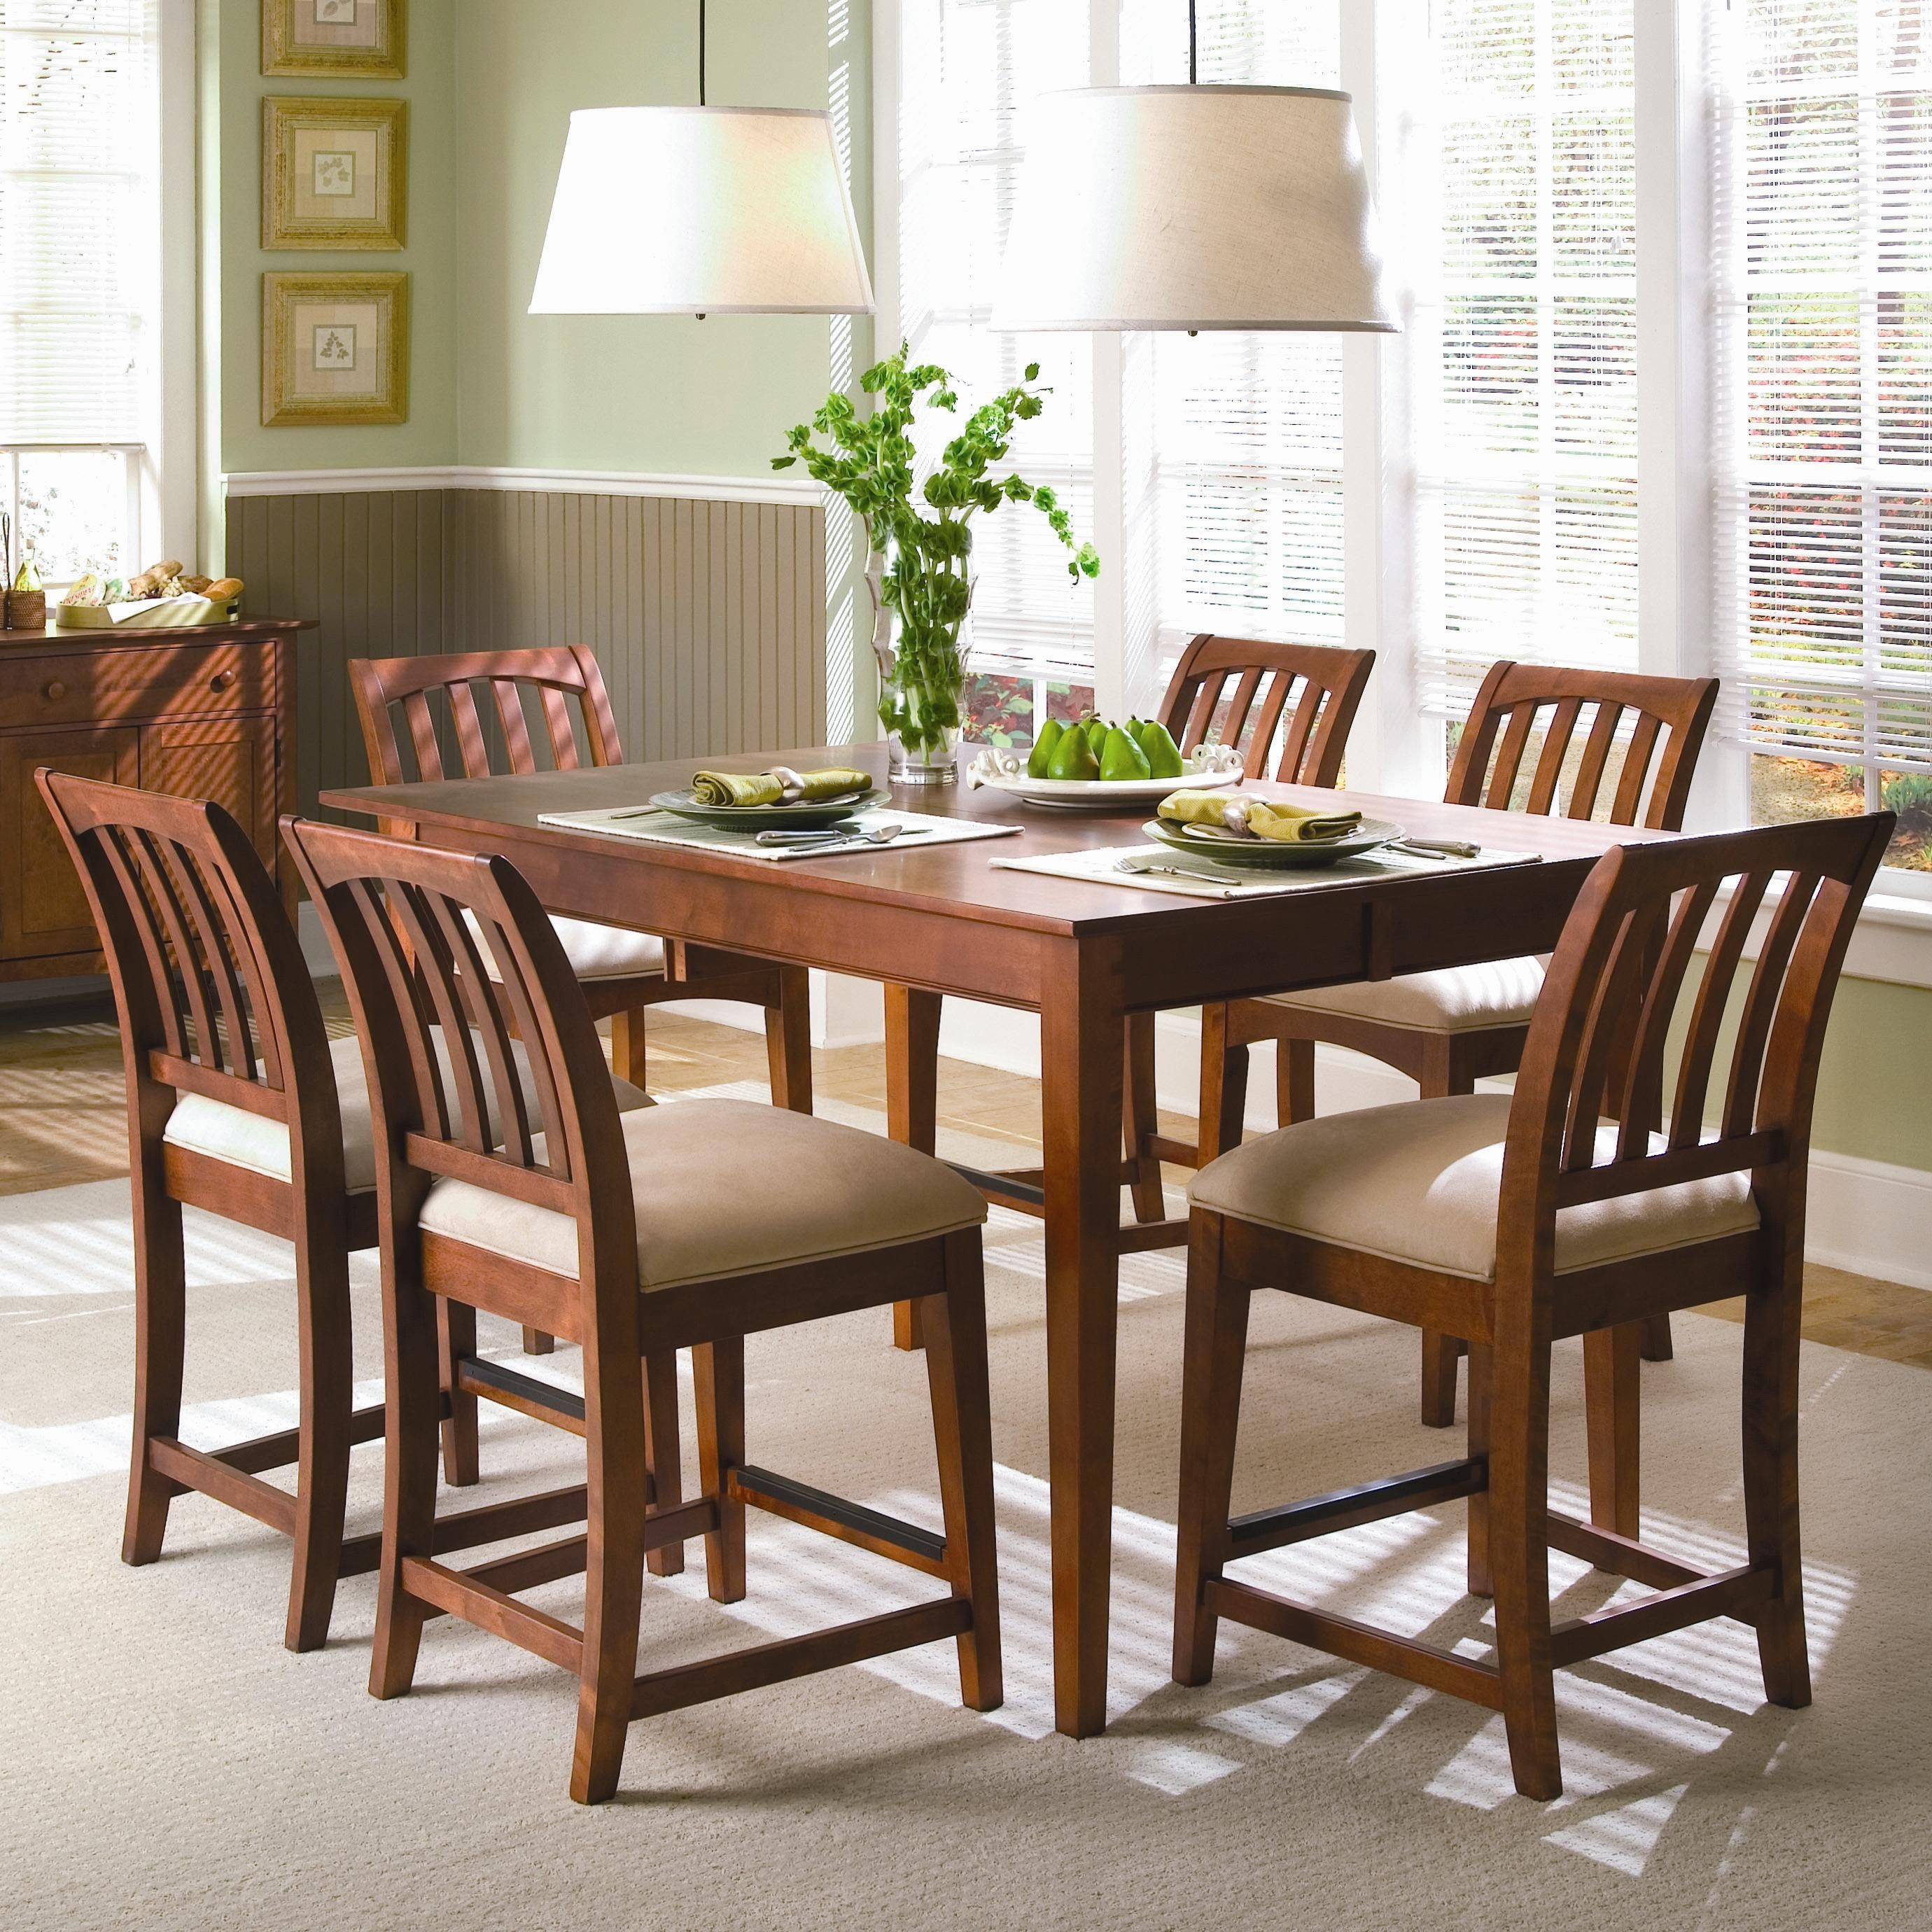 Gathering House 7 Piece Tall Dining Set By Kincaid Furniture Furniture Kincaid Furniture Dining